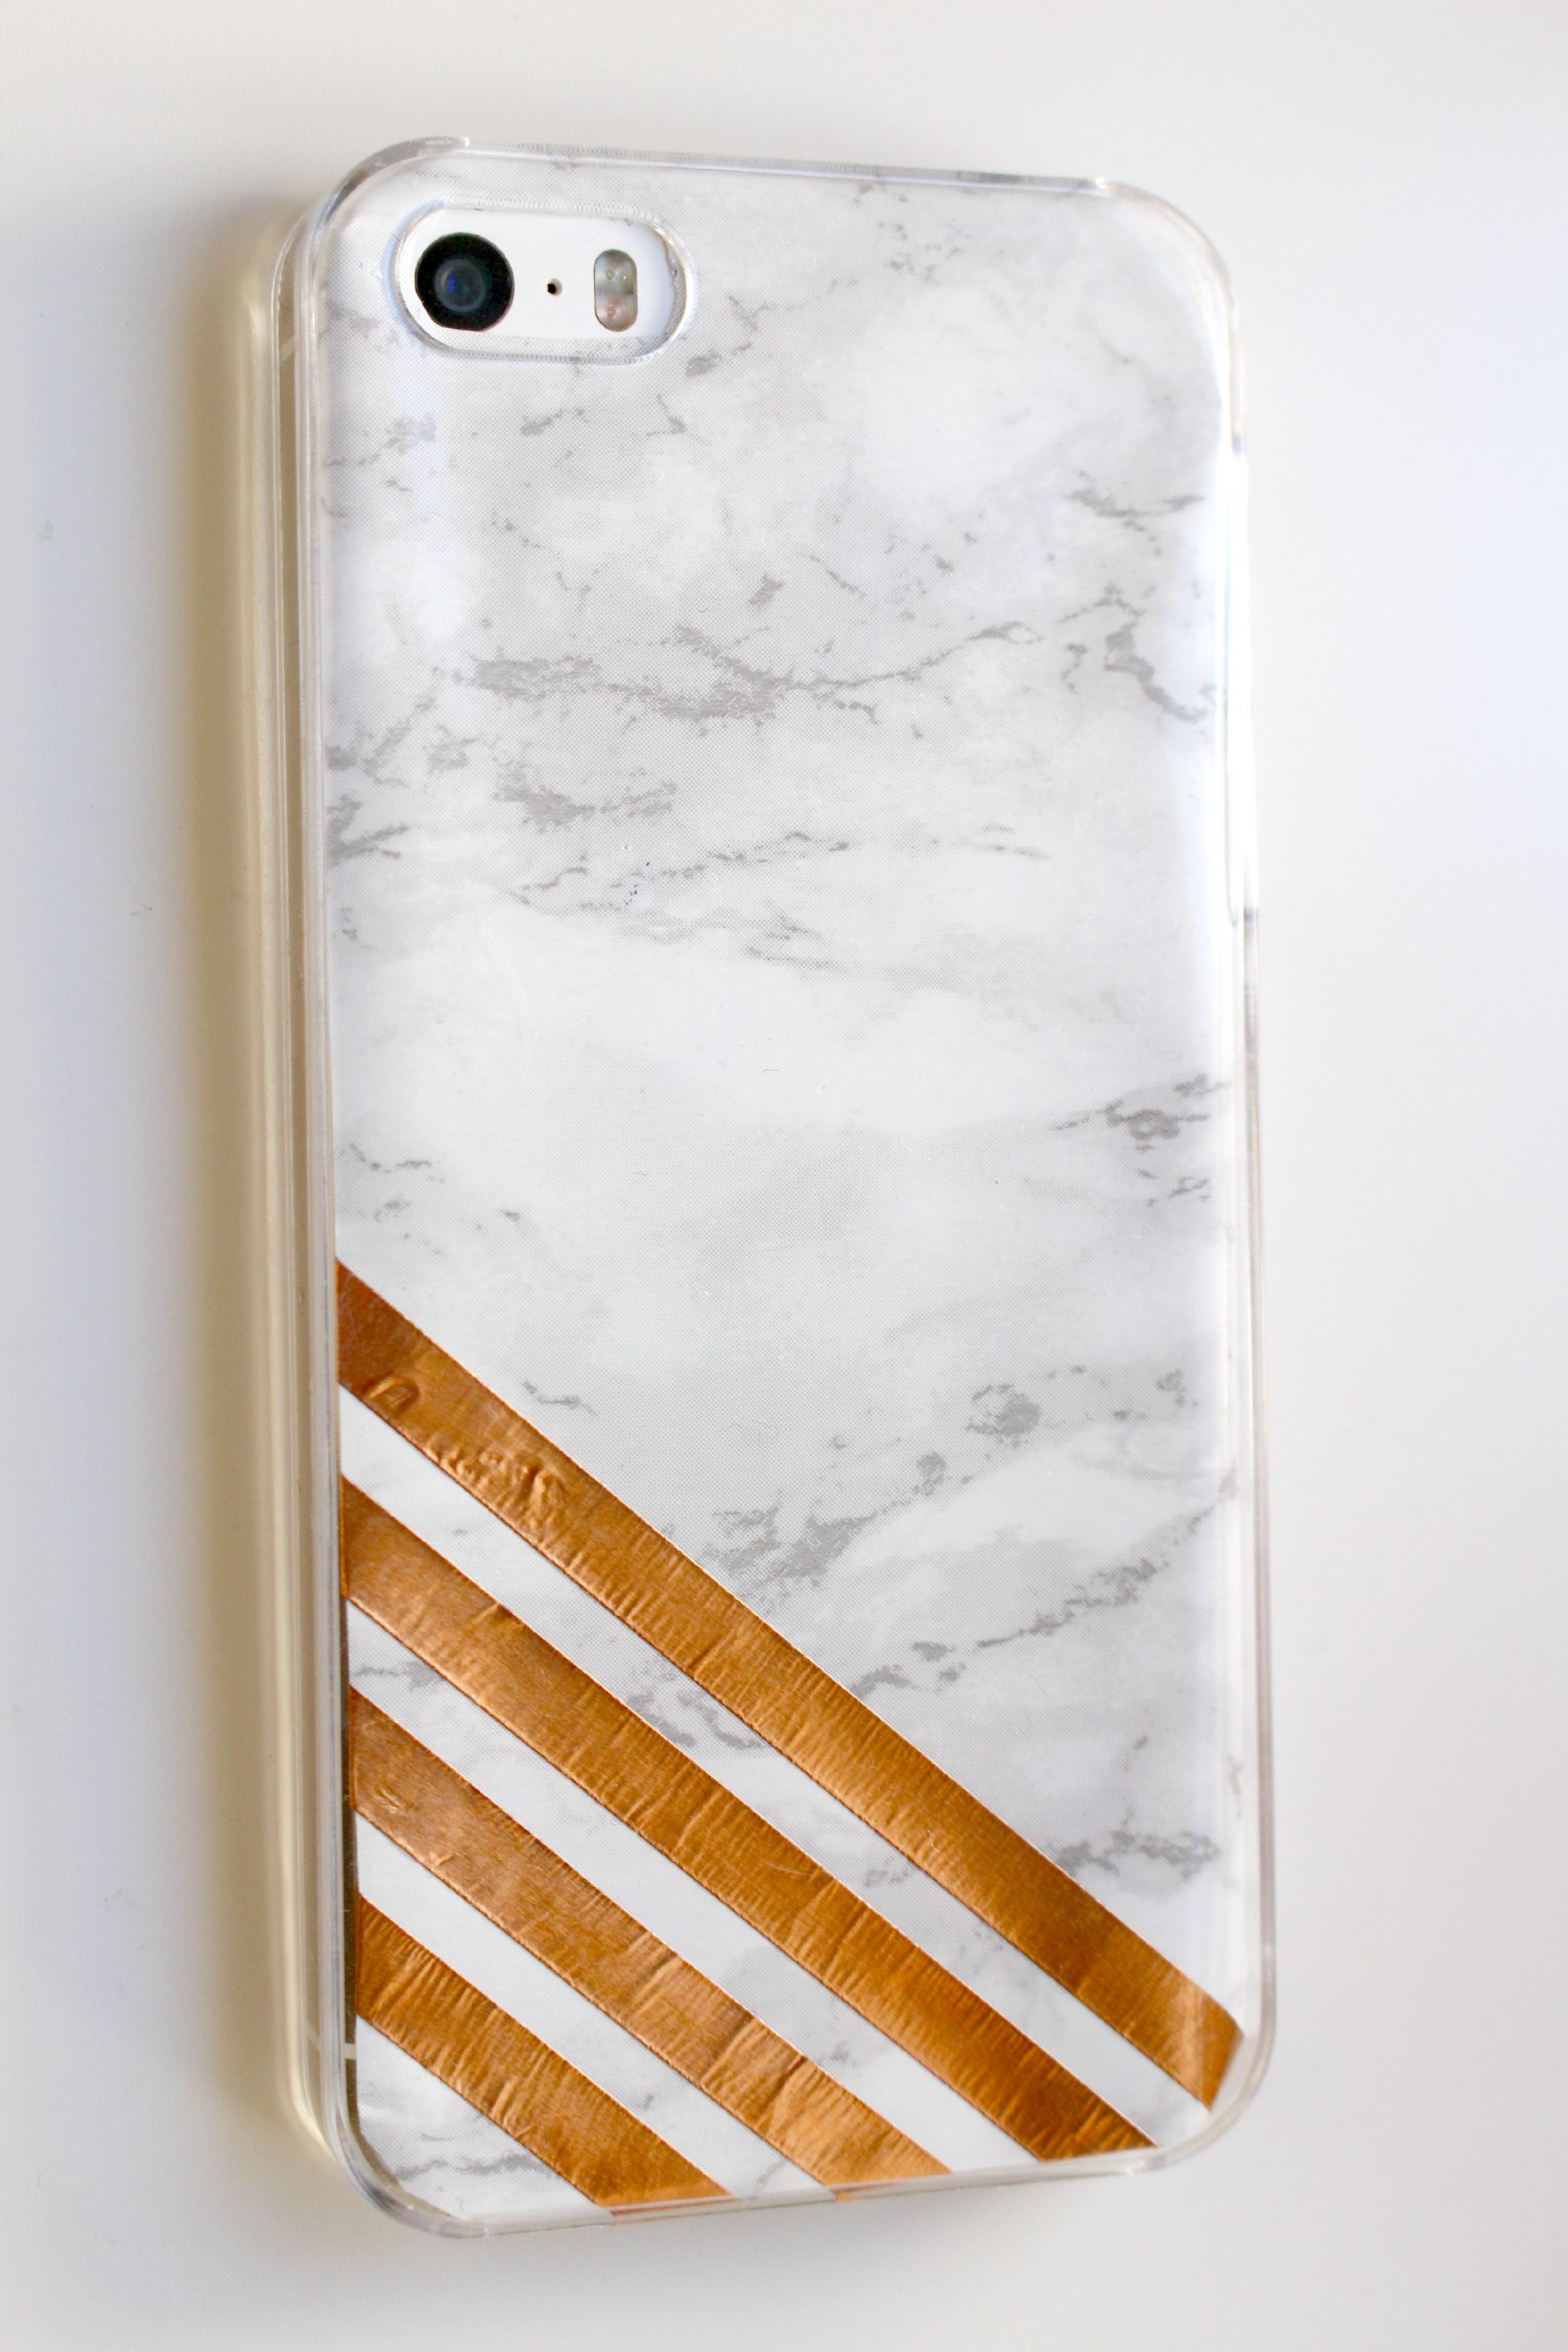 DIY Marble Crafts : DIY Copper u0026 Marble Phone Case by Twinspiration at ...